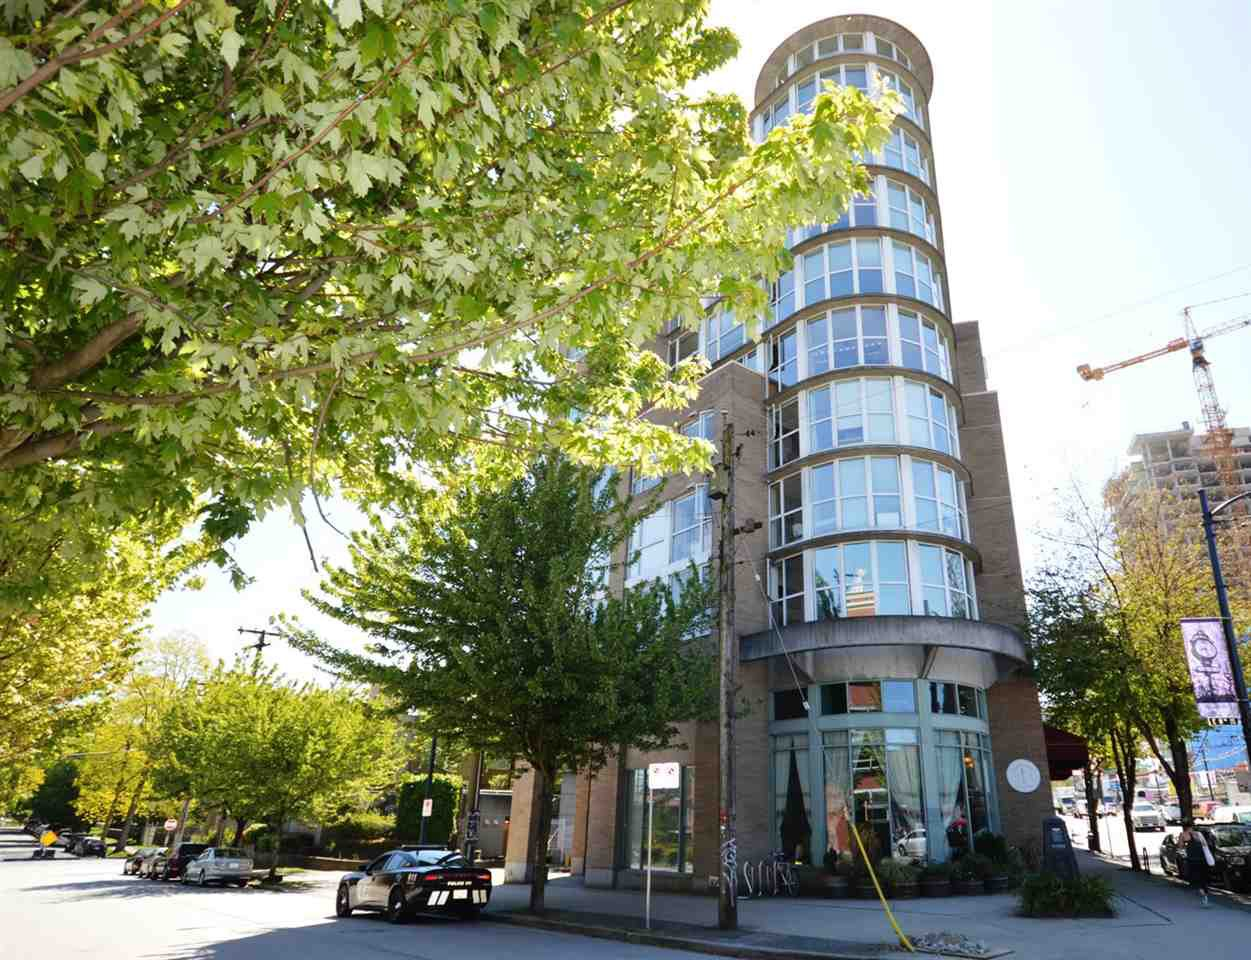 Main Photo: 415 288 E 8TH Avenue in Vancouver: Mount Pleasant VE Condo for sale (Vancouver East)  : MLS®# R2170623